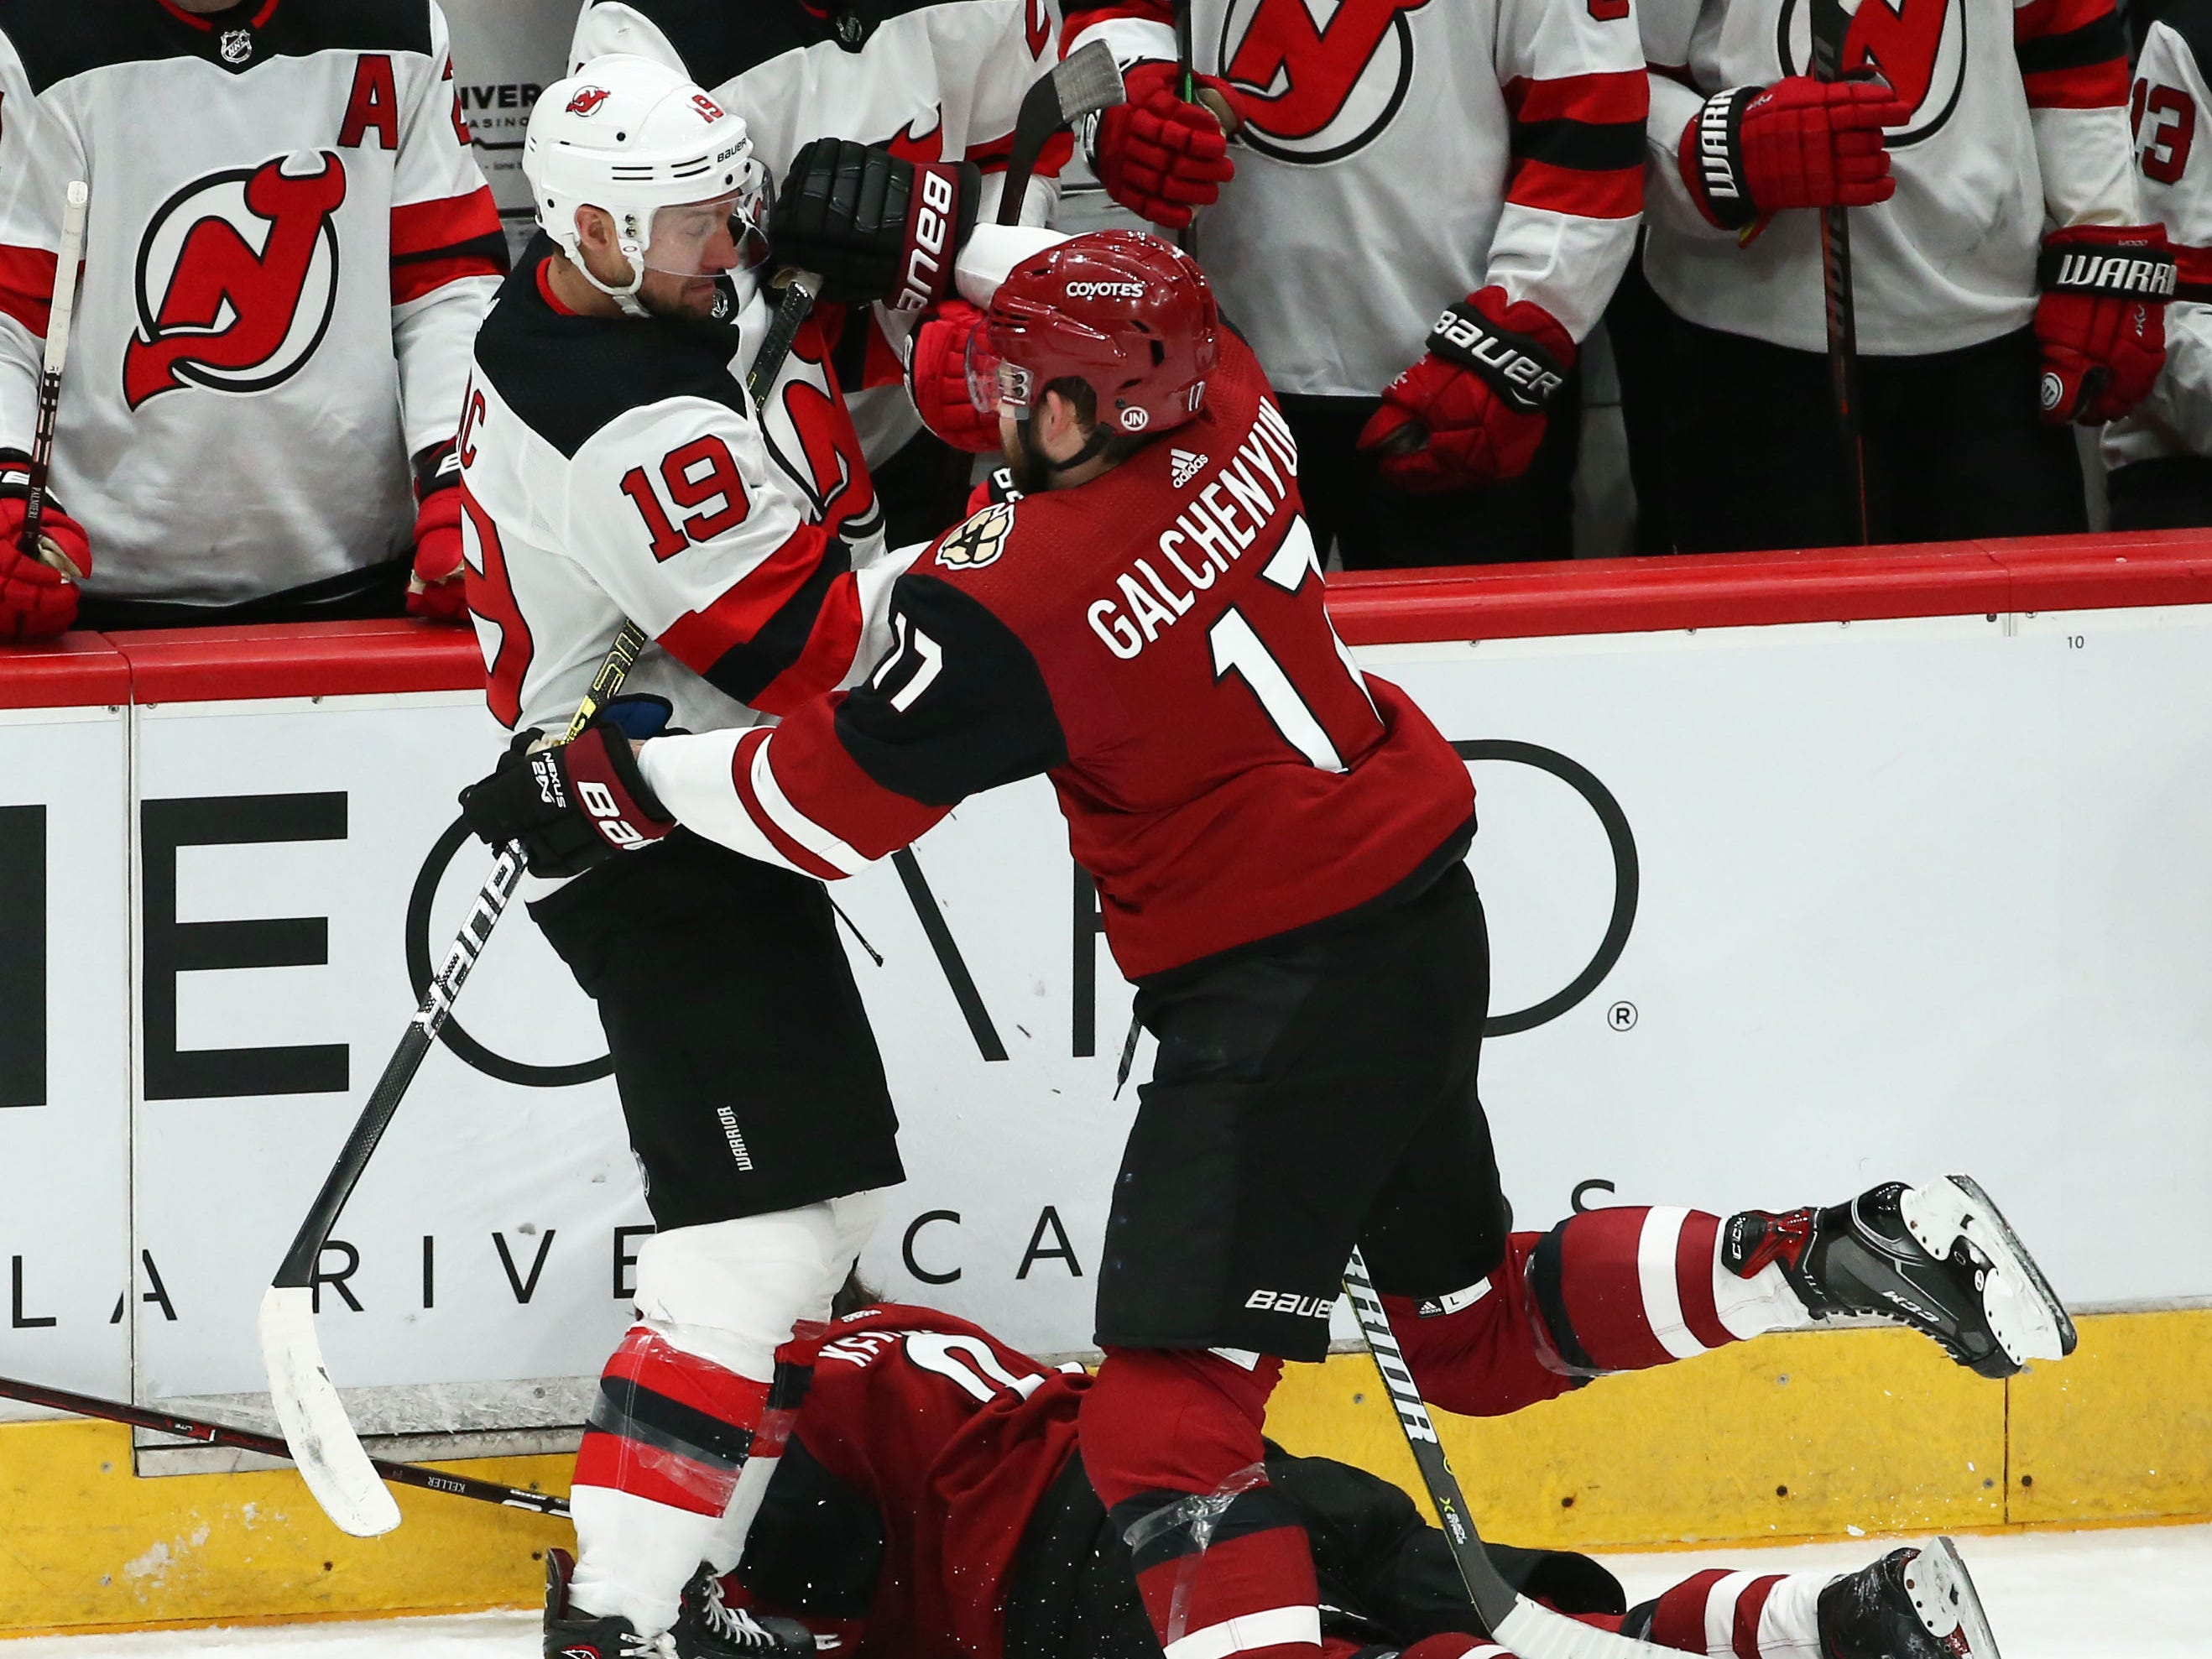 Arizona Coyotes' Alex Galchenyuk (17) comes to help Clayton Keller after he was driven into the boards by New Jersey Devils' Travis Zajac (19) in the 1st period on Jan. 4 at Gila River Arena.